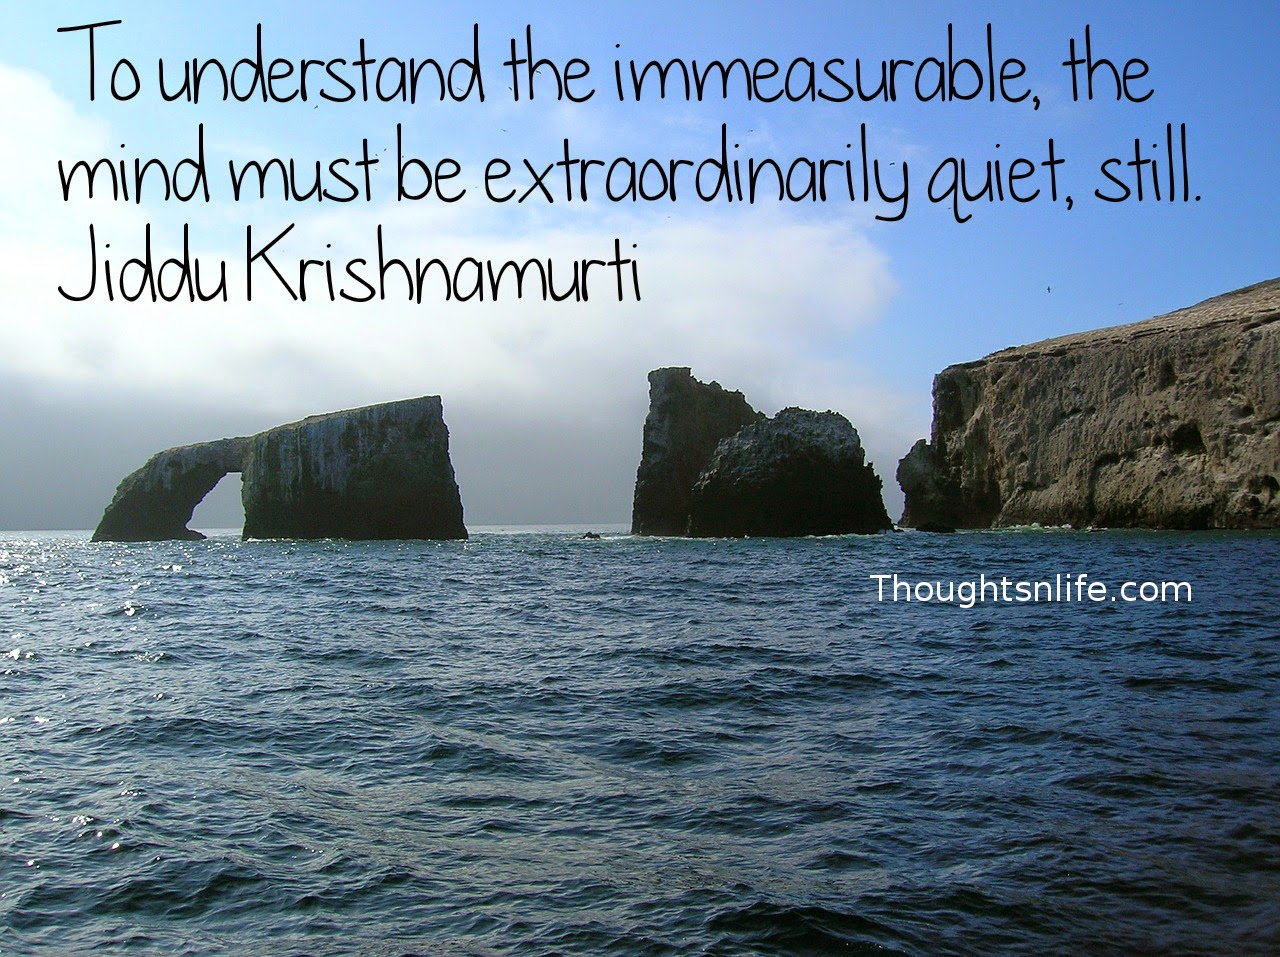 Thoughtsnlife.com: Thoughtsnlife.com: To understand the immeasurable, the mind must be extraordinarily quiet, still. Jiddu Krishnamurti